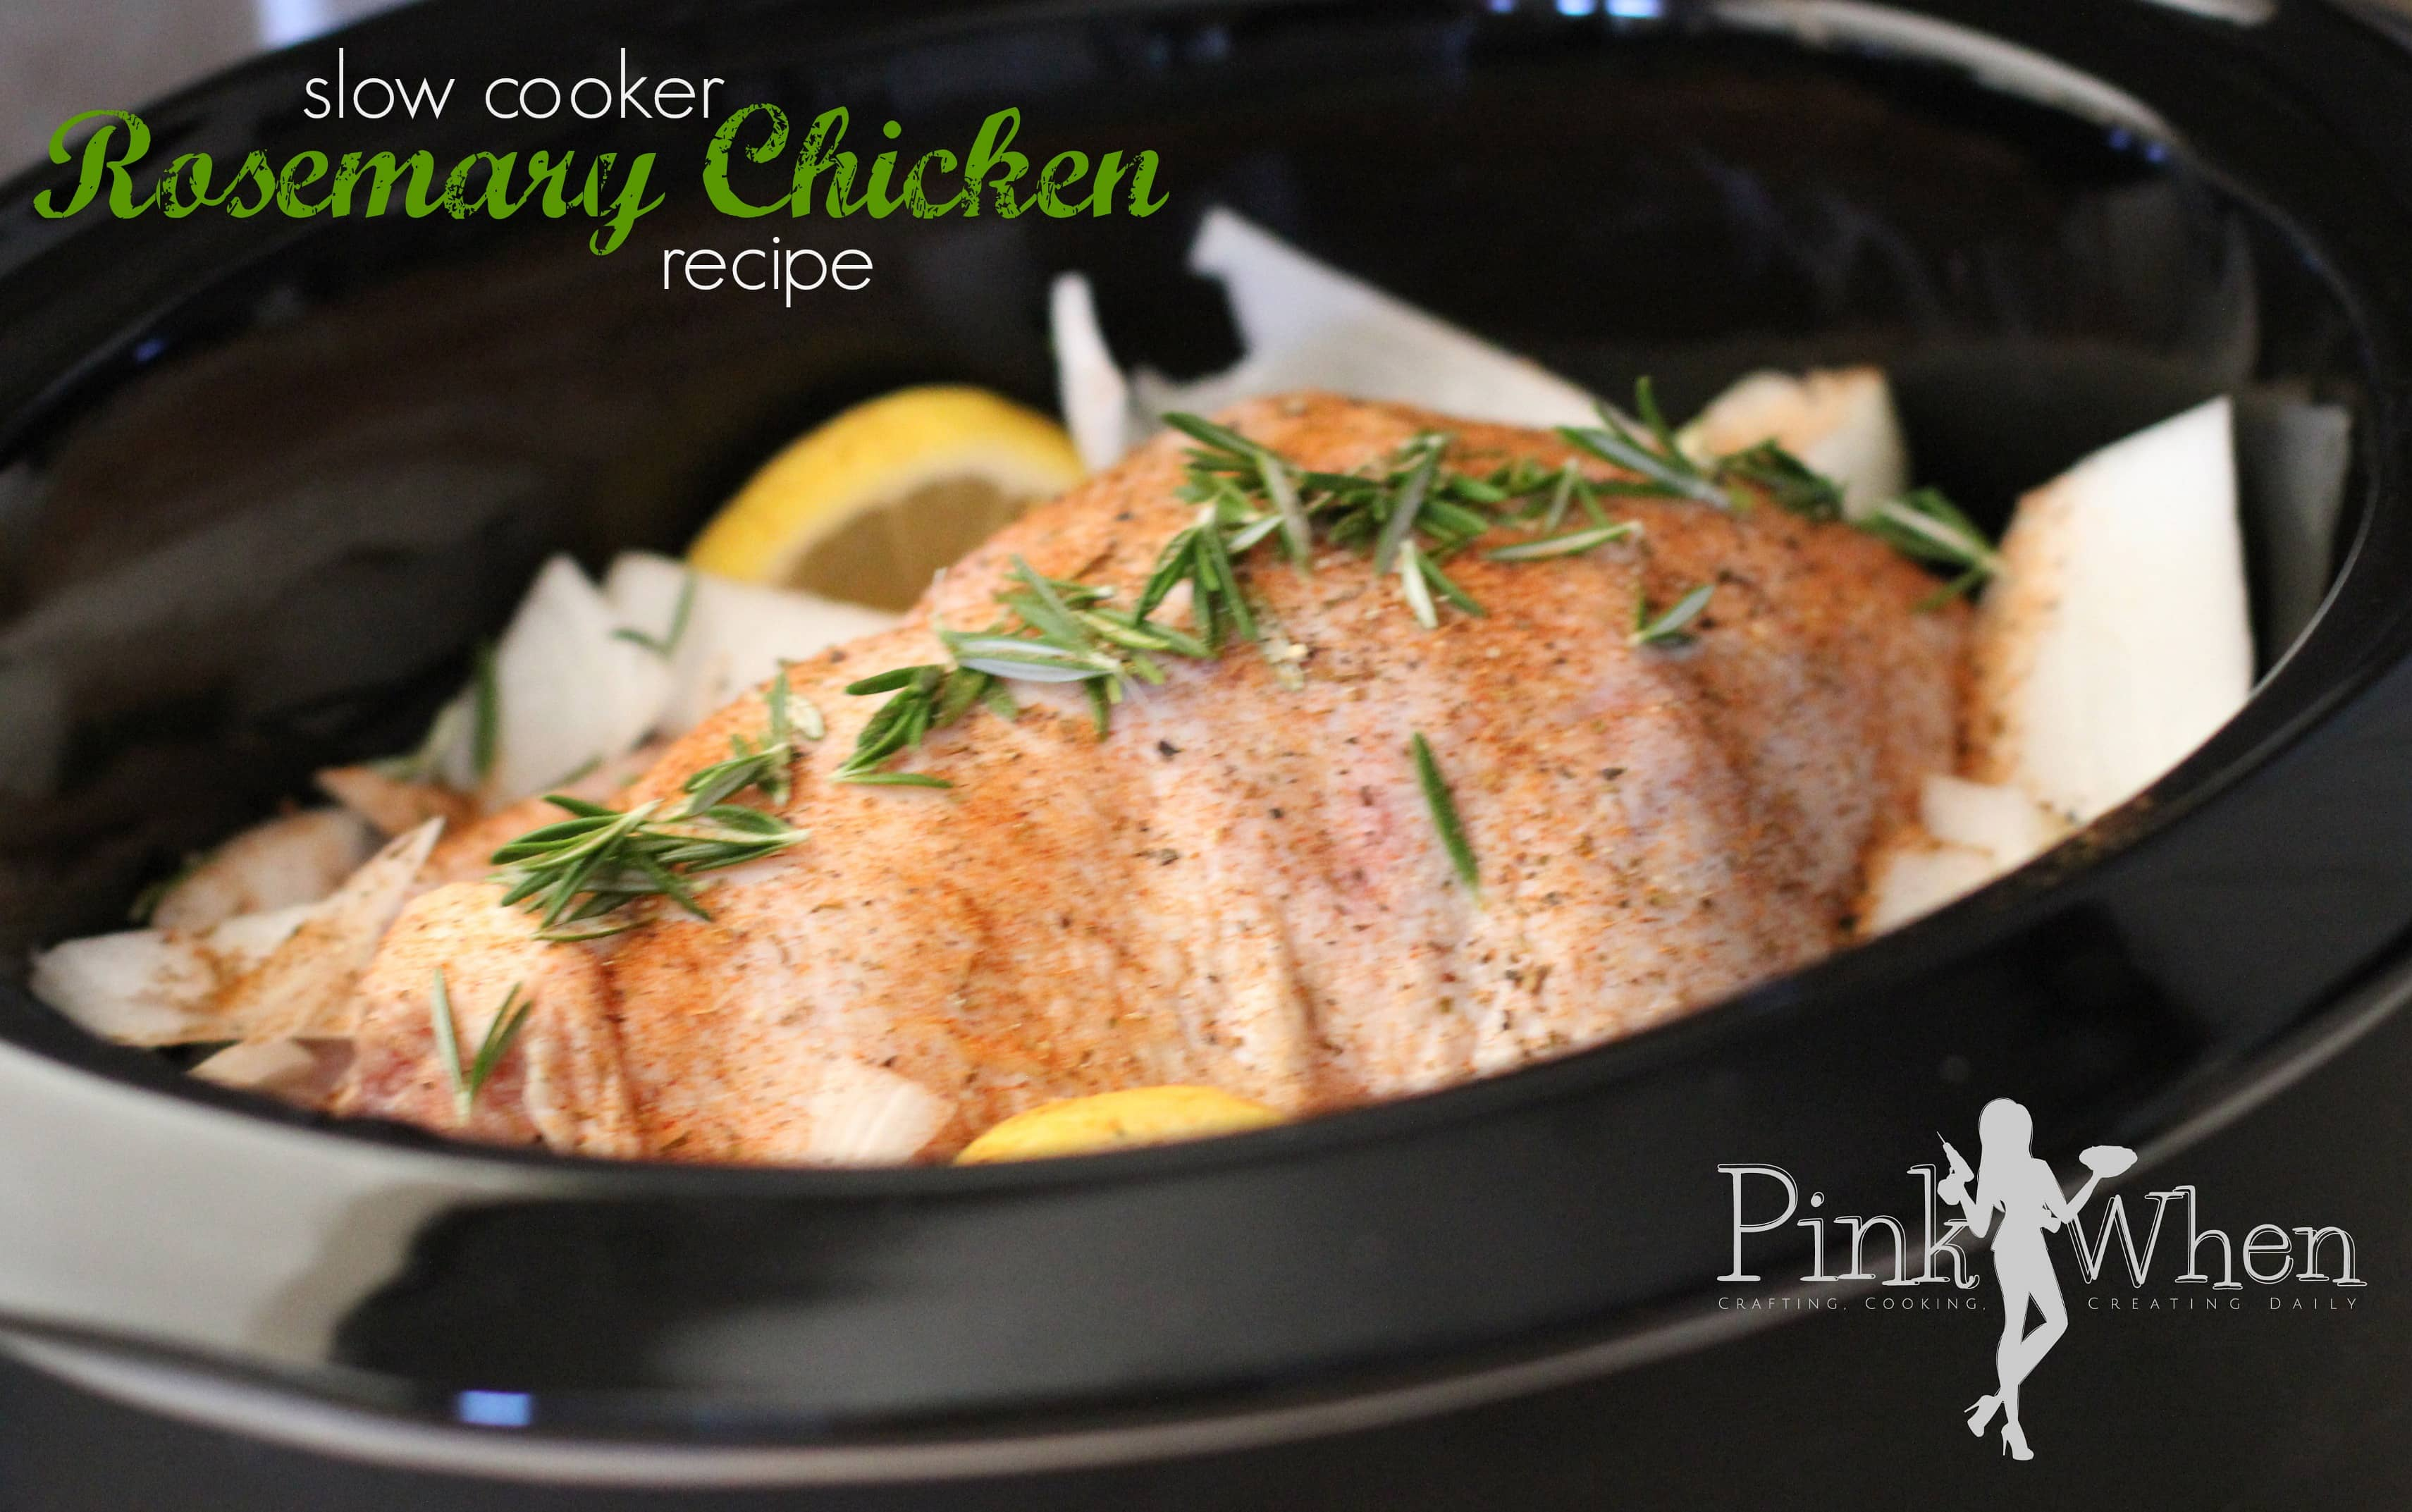 Slow Cooker Rosemary Whole Chicken via PinkWhen that is super moist and only uses a few ingredients!